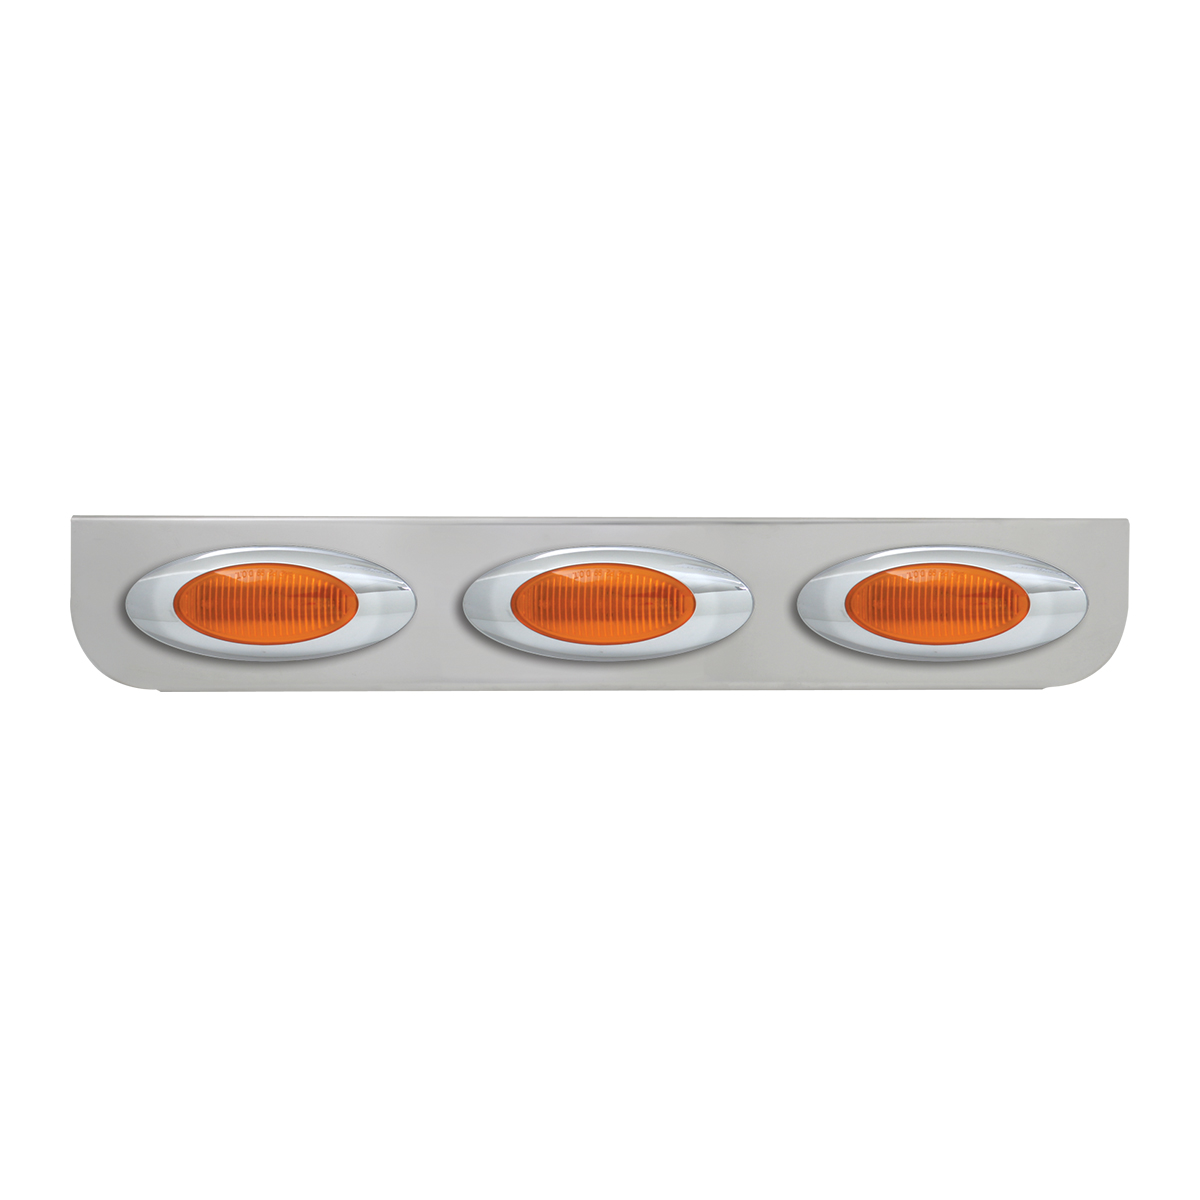 "#89060 Triple Stainless Steel ""L"" Shape Light Bracket with Plug-In Y2K Incandescent Lights"